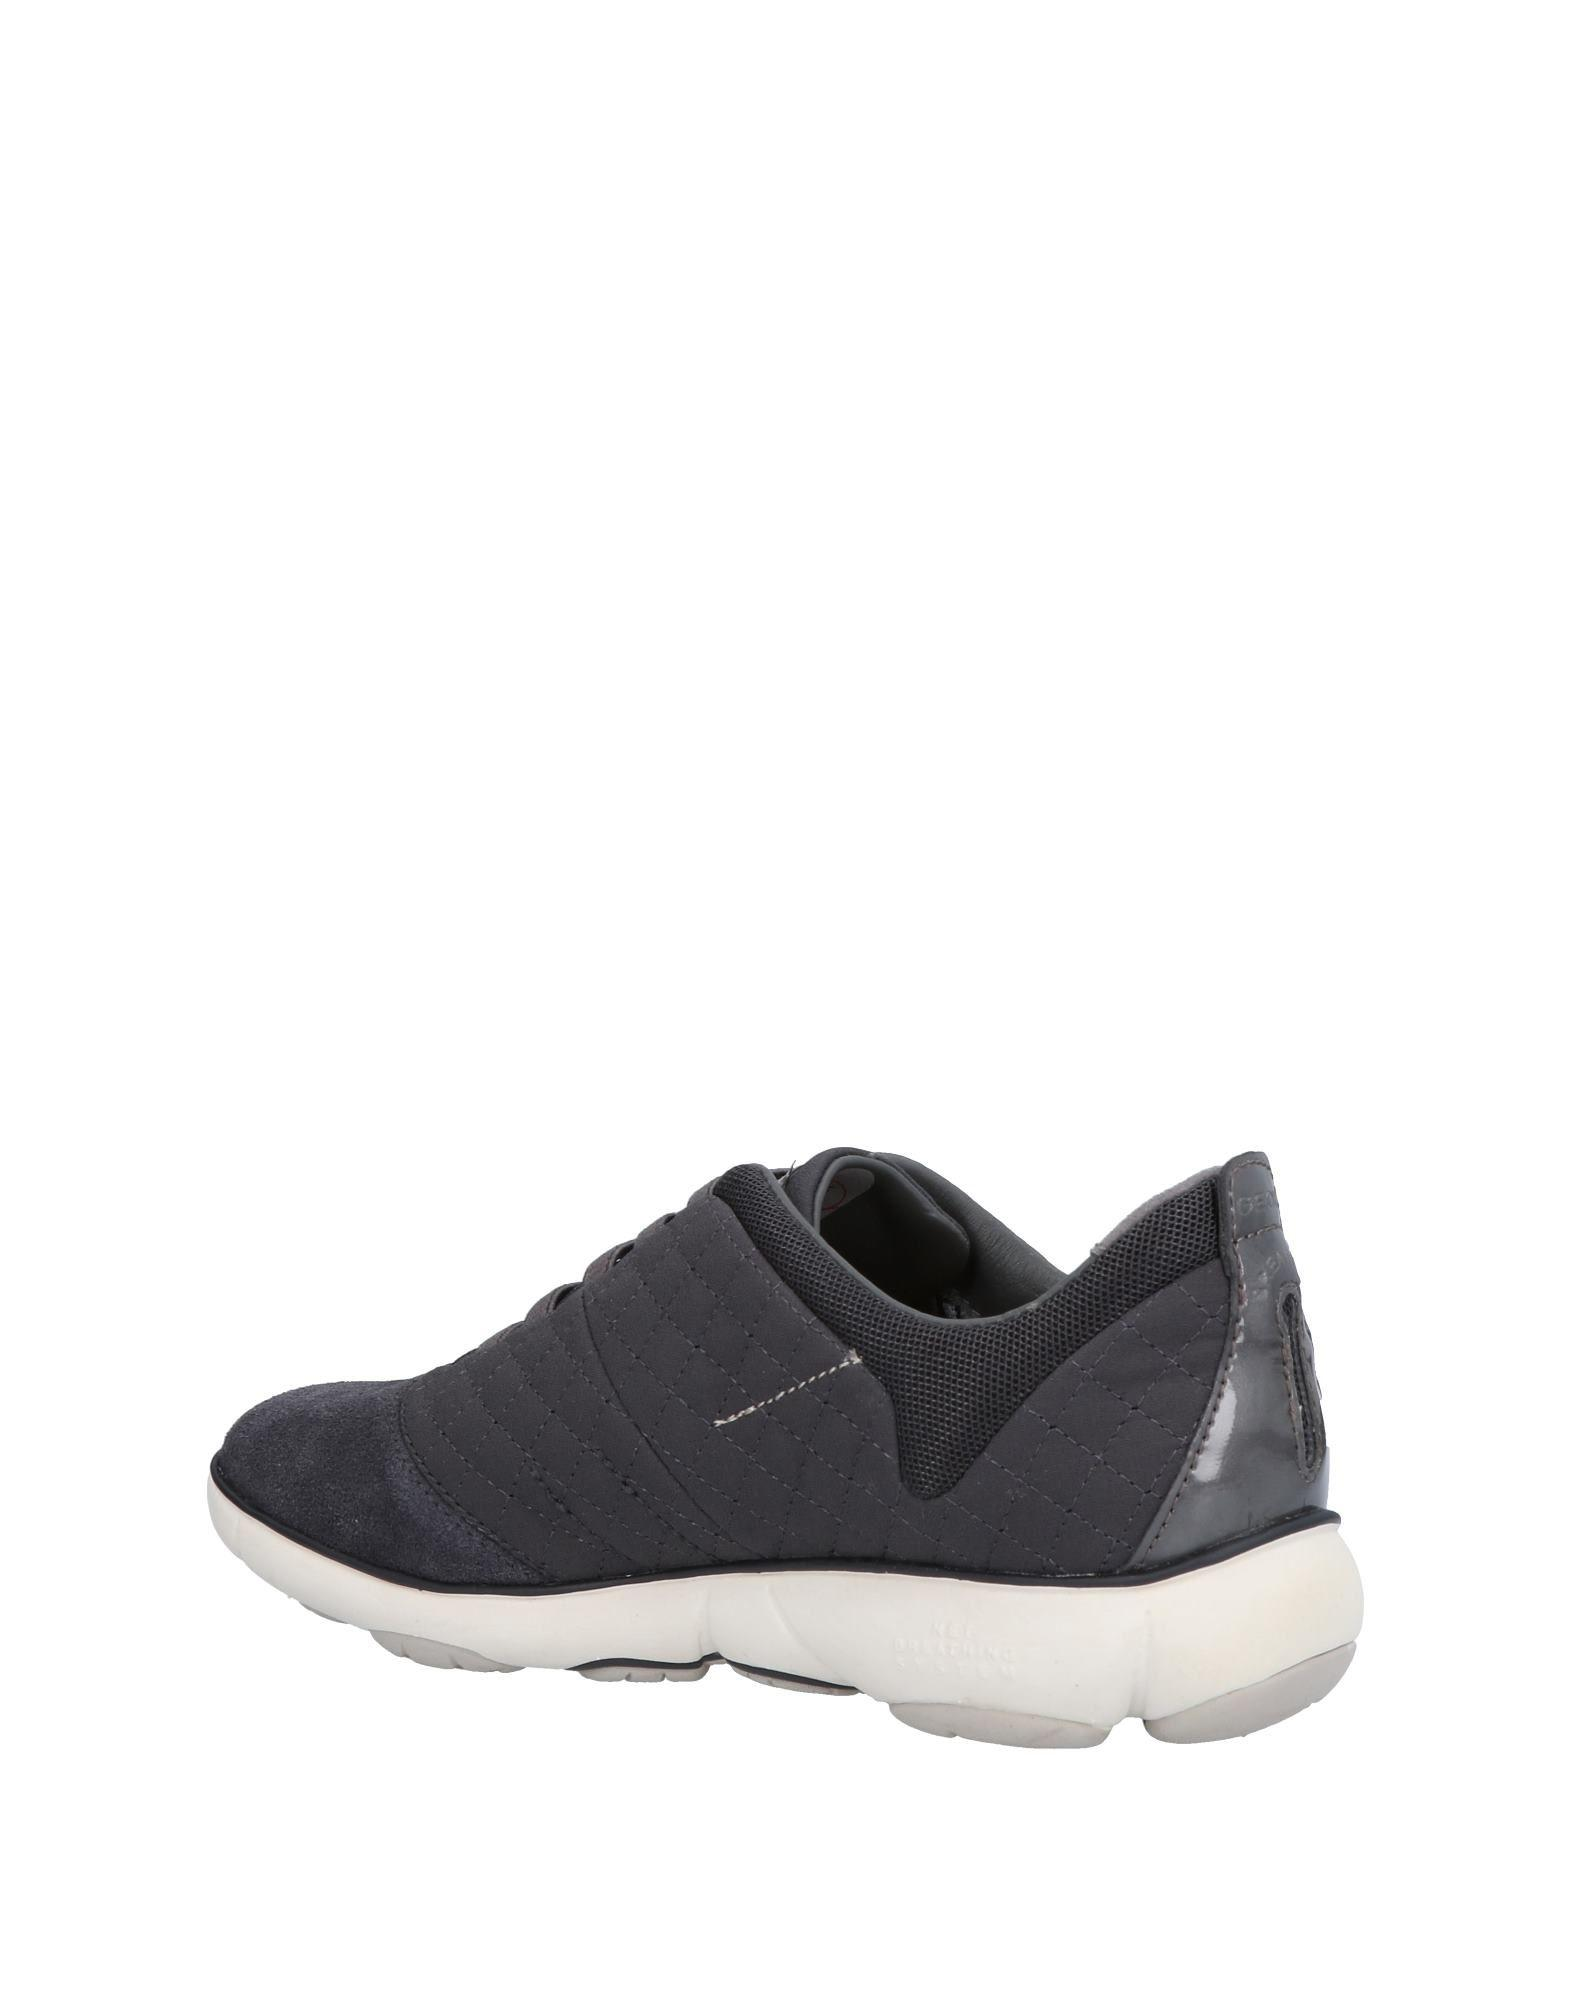 Geox Leather Low-tops & Sneakers in Lead (Grey)